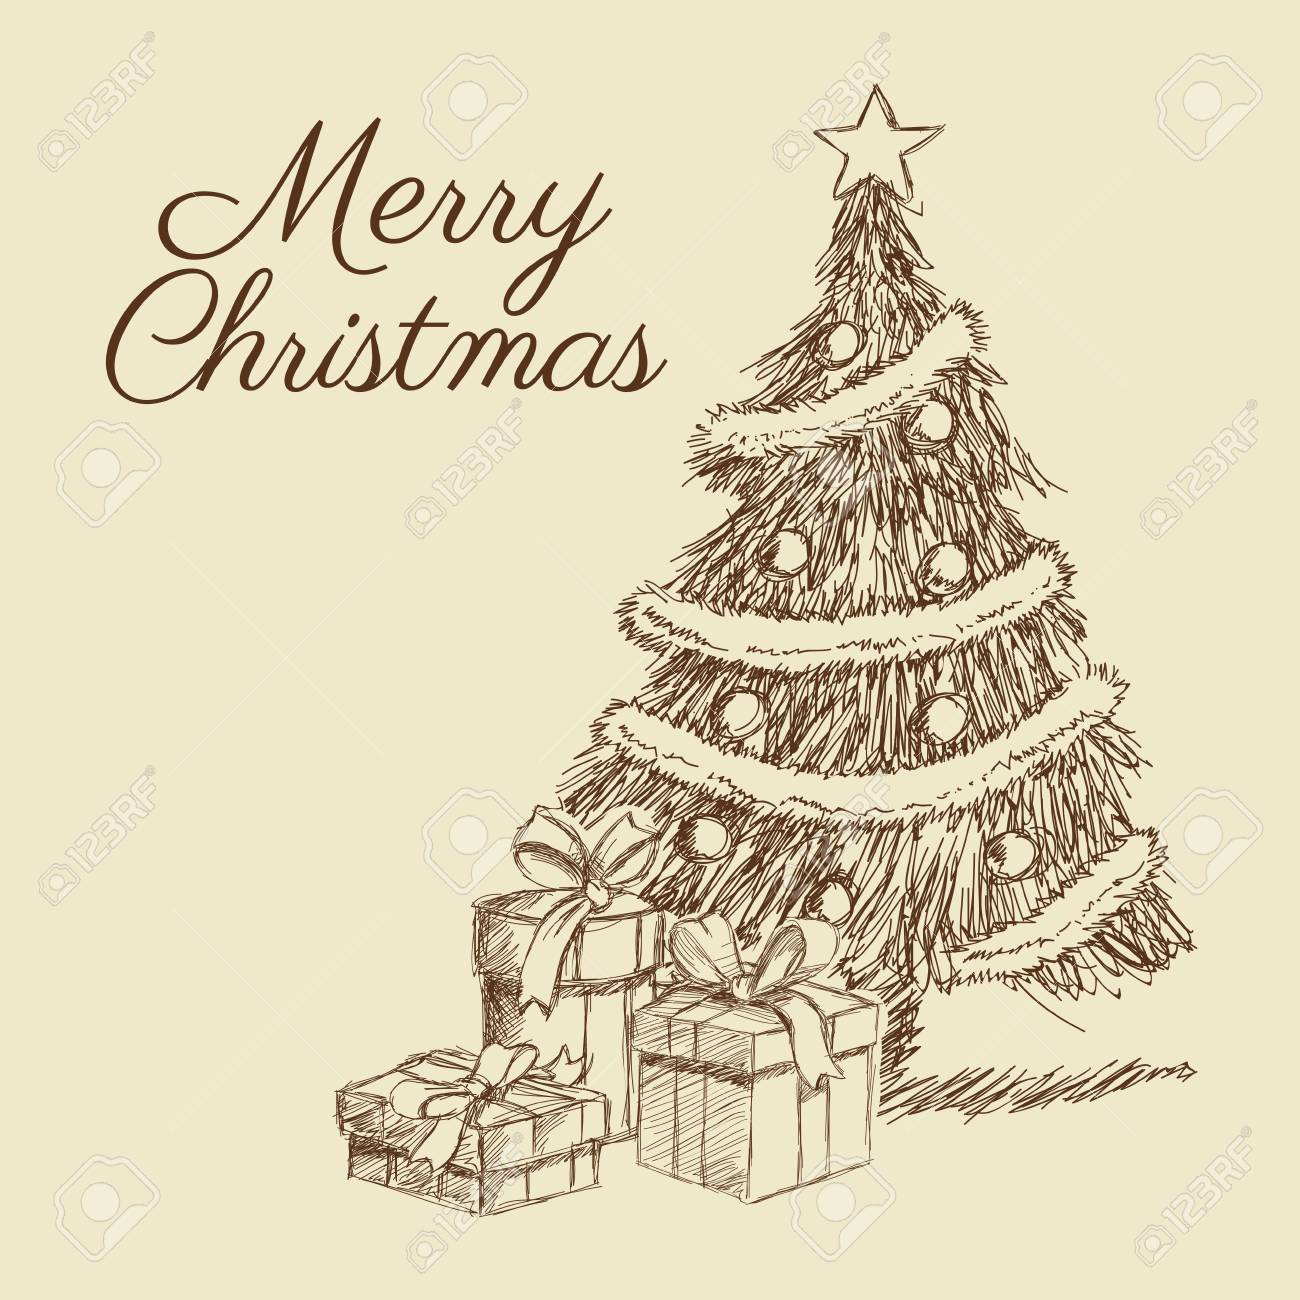 Christmas Celebration Images For Drawing.Pine Tree Gift Present Merry Christmas Decoration Celebration